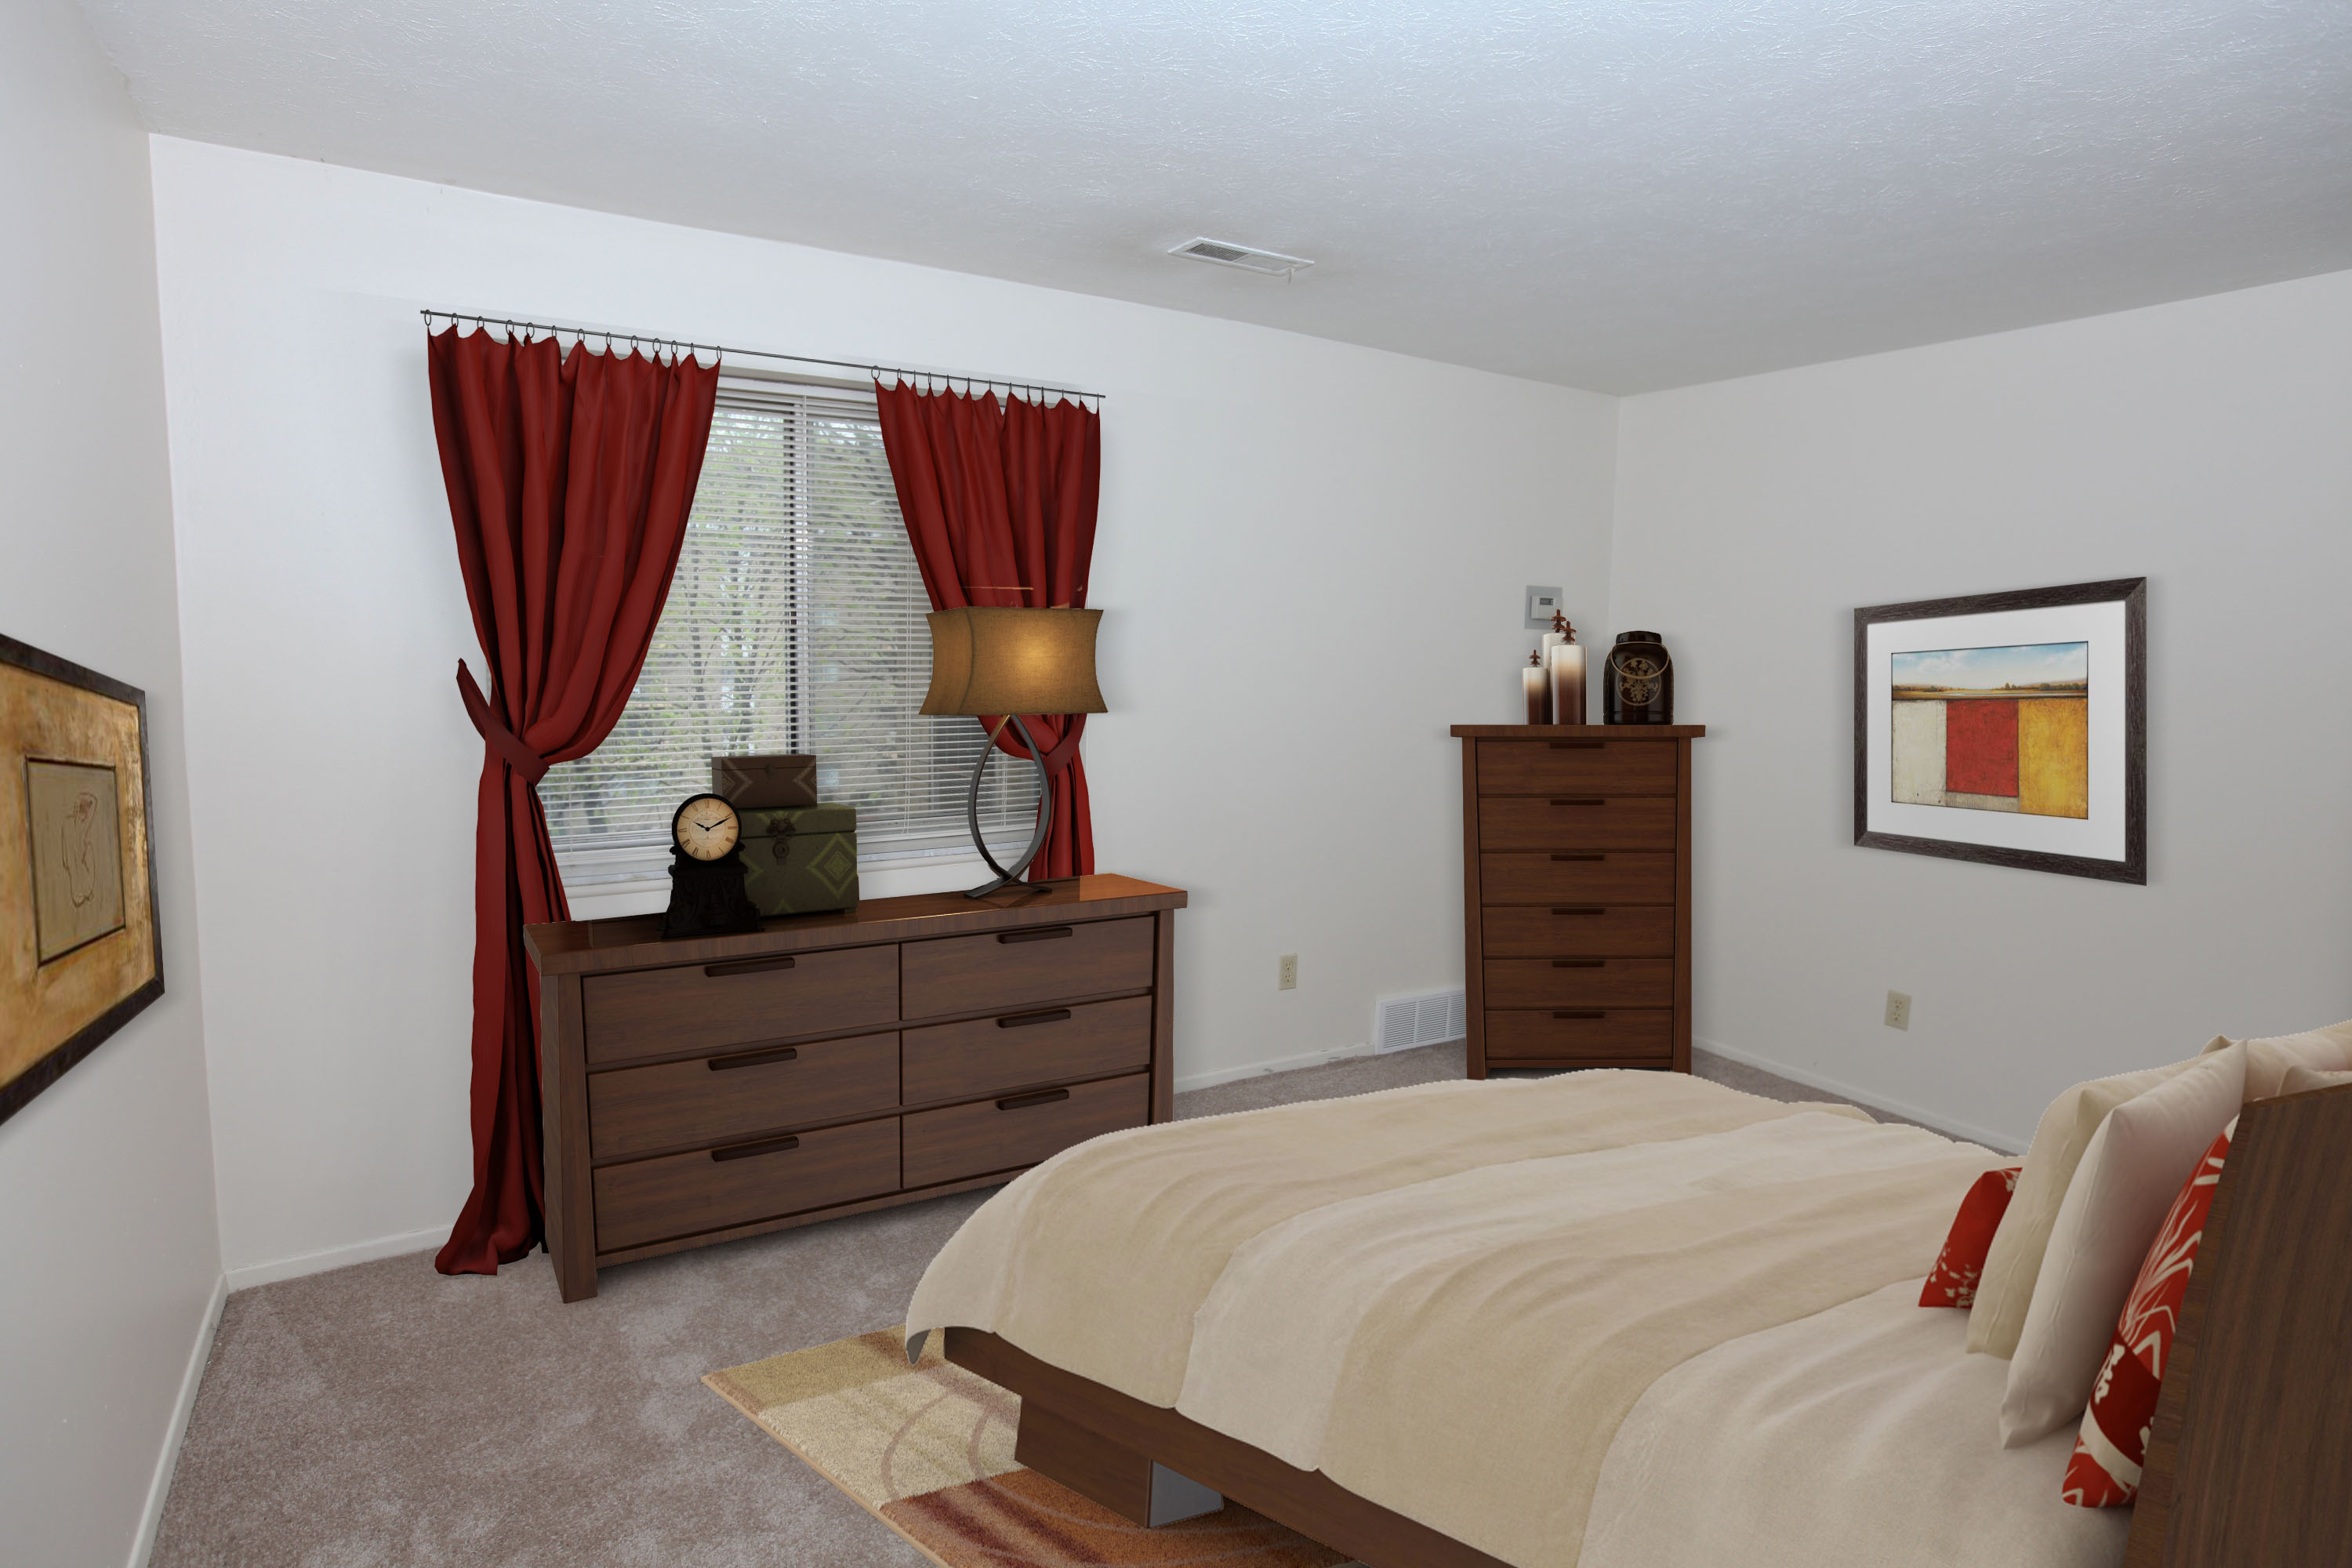 1A Bedroom Furnished at the Greenridge on Euclid Apartments in Euclid, OH